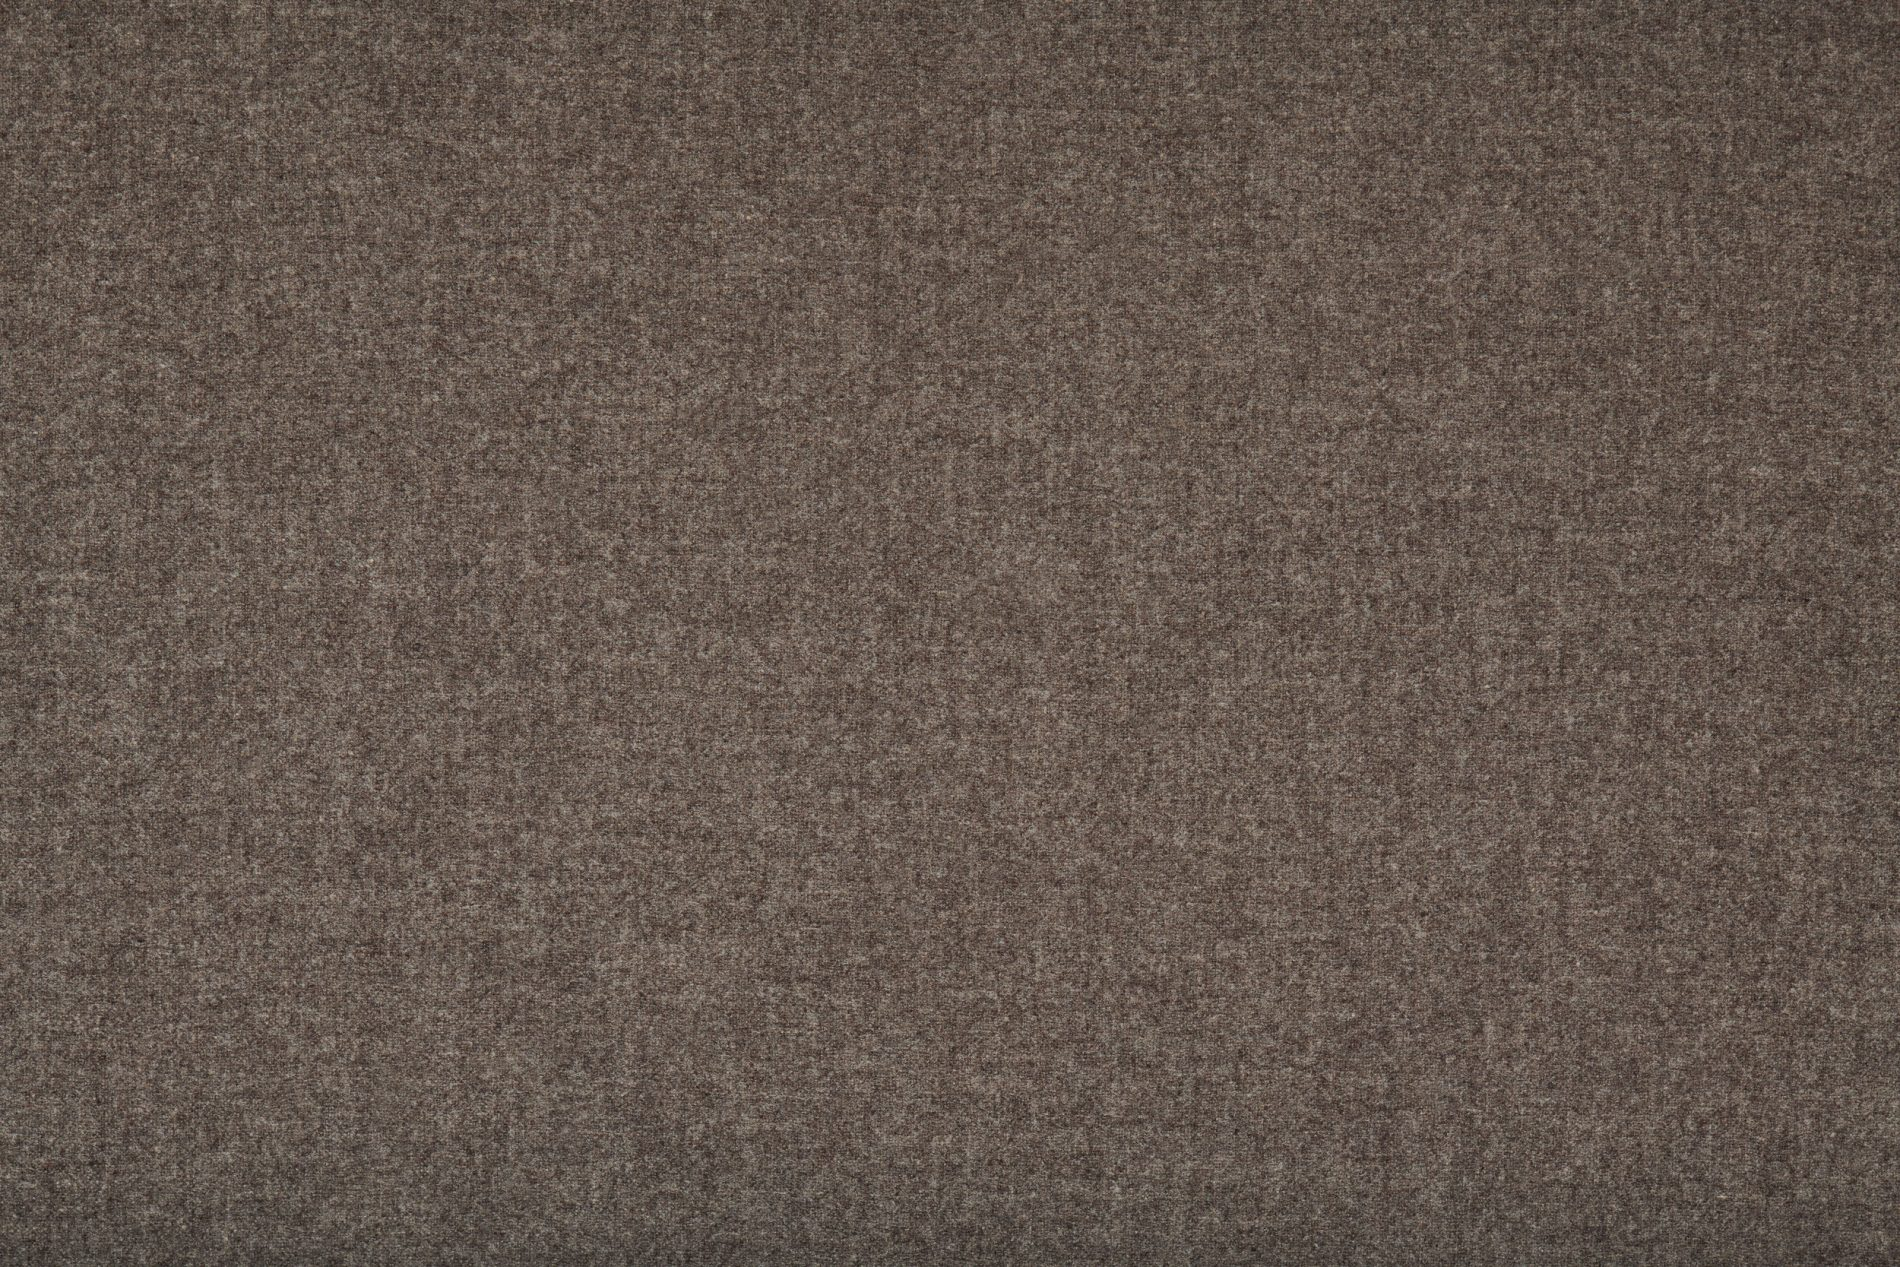 PURE 360 Plain Merino wool (19/5003)